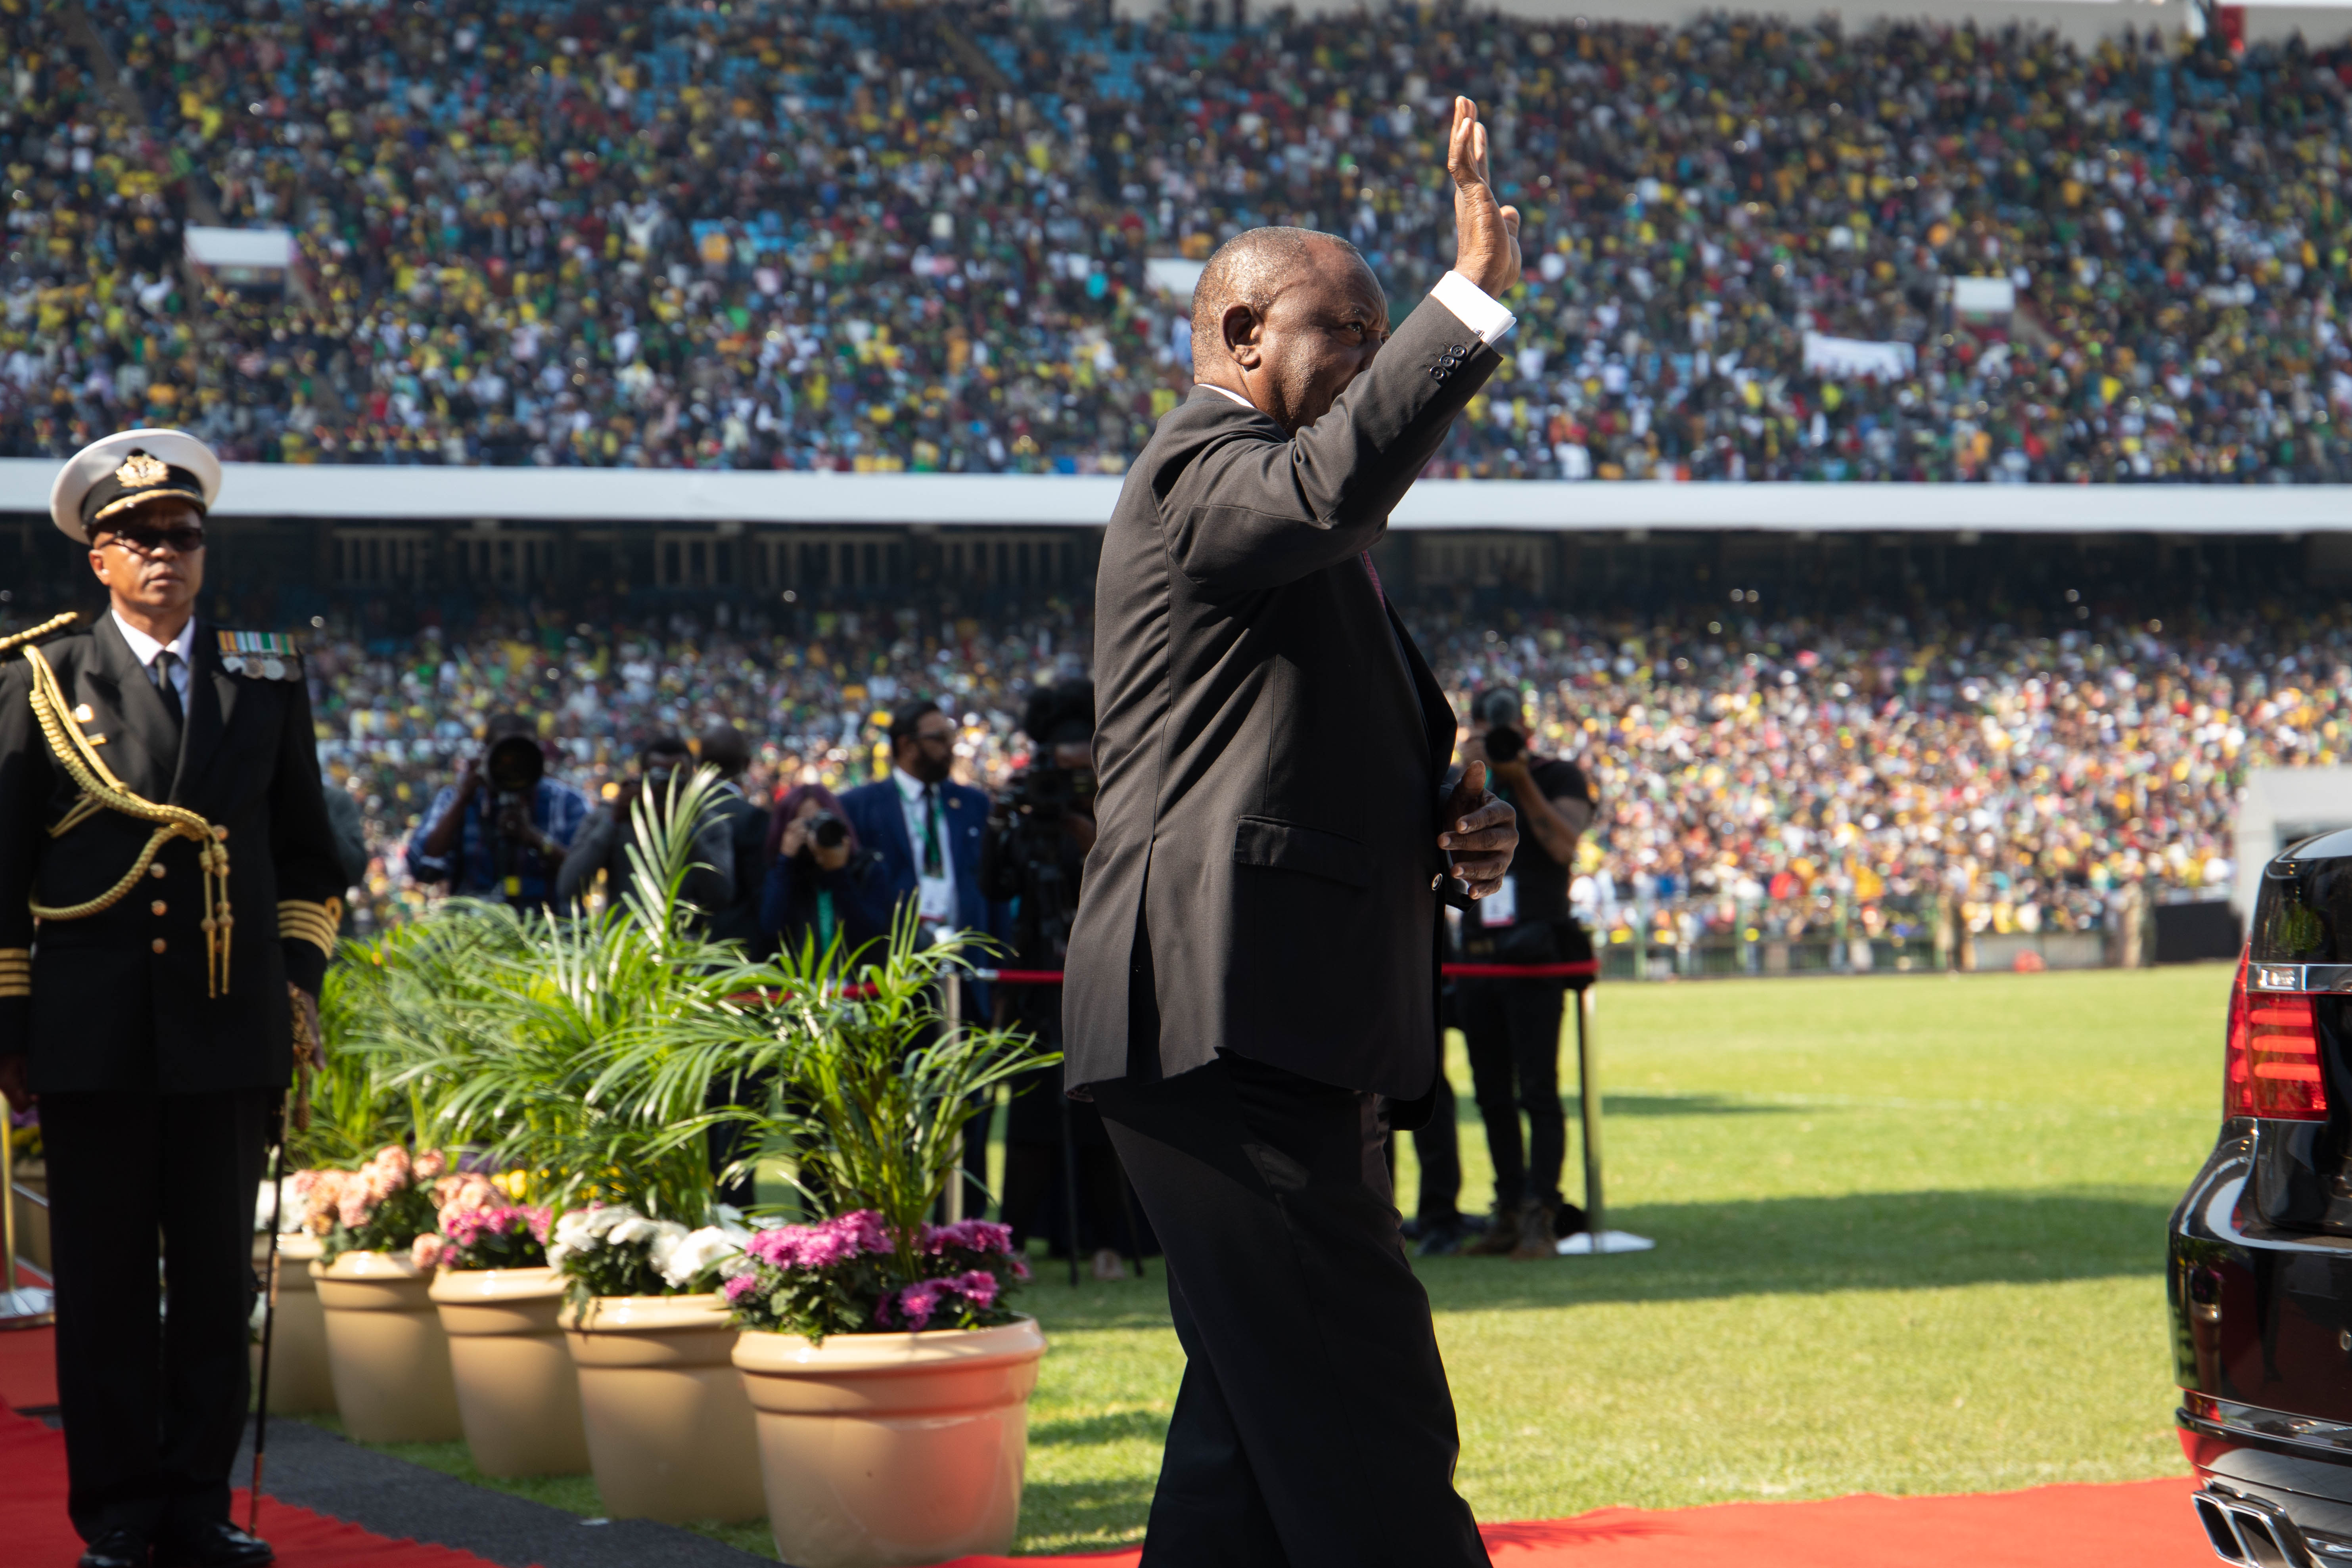 IMG 5323 - Photos From Cyril Ramaphosa's Presidential Inauguration As Fifth President Of South Africa